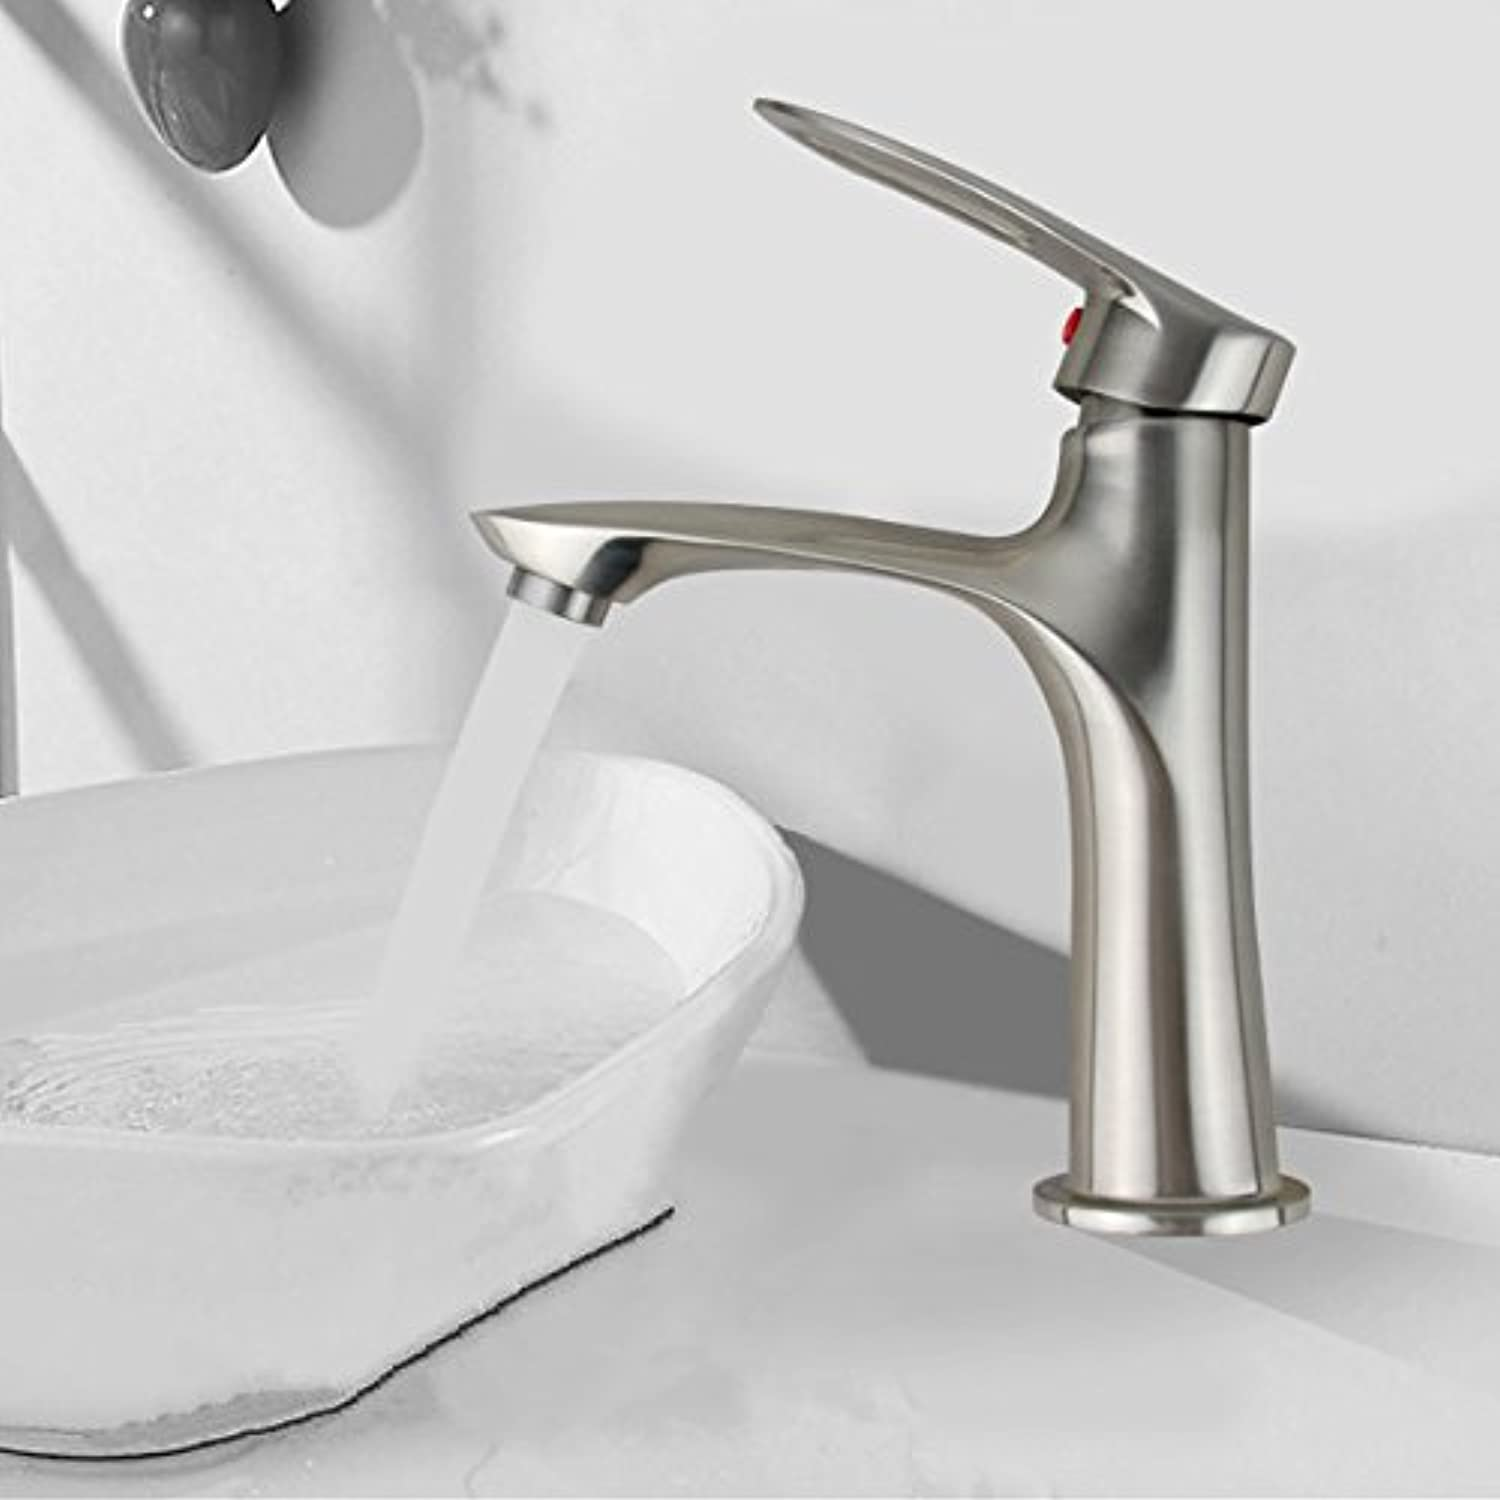 Gyps Faucet Single-Lever Washbasin Mixer Tap Bathroom Sink Mixer Tap Wash Basin Mixer Tap Wash Brushed Wash Basin Single Hole Sink Fittings in Water Pipe